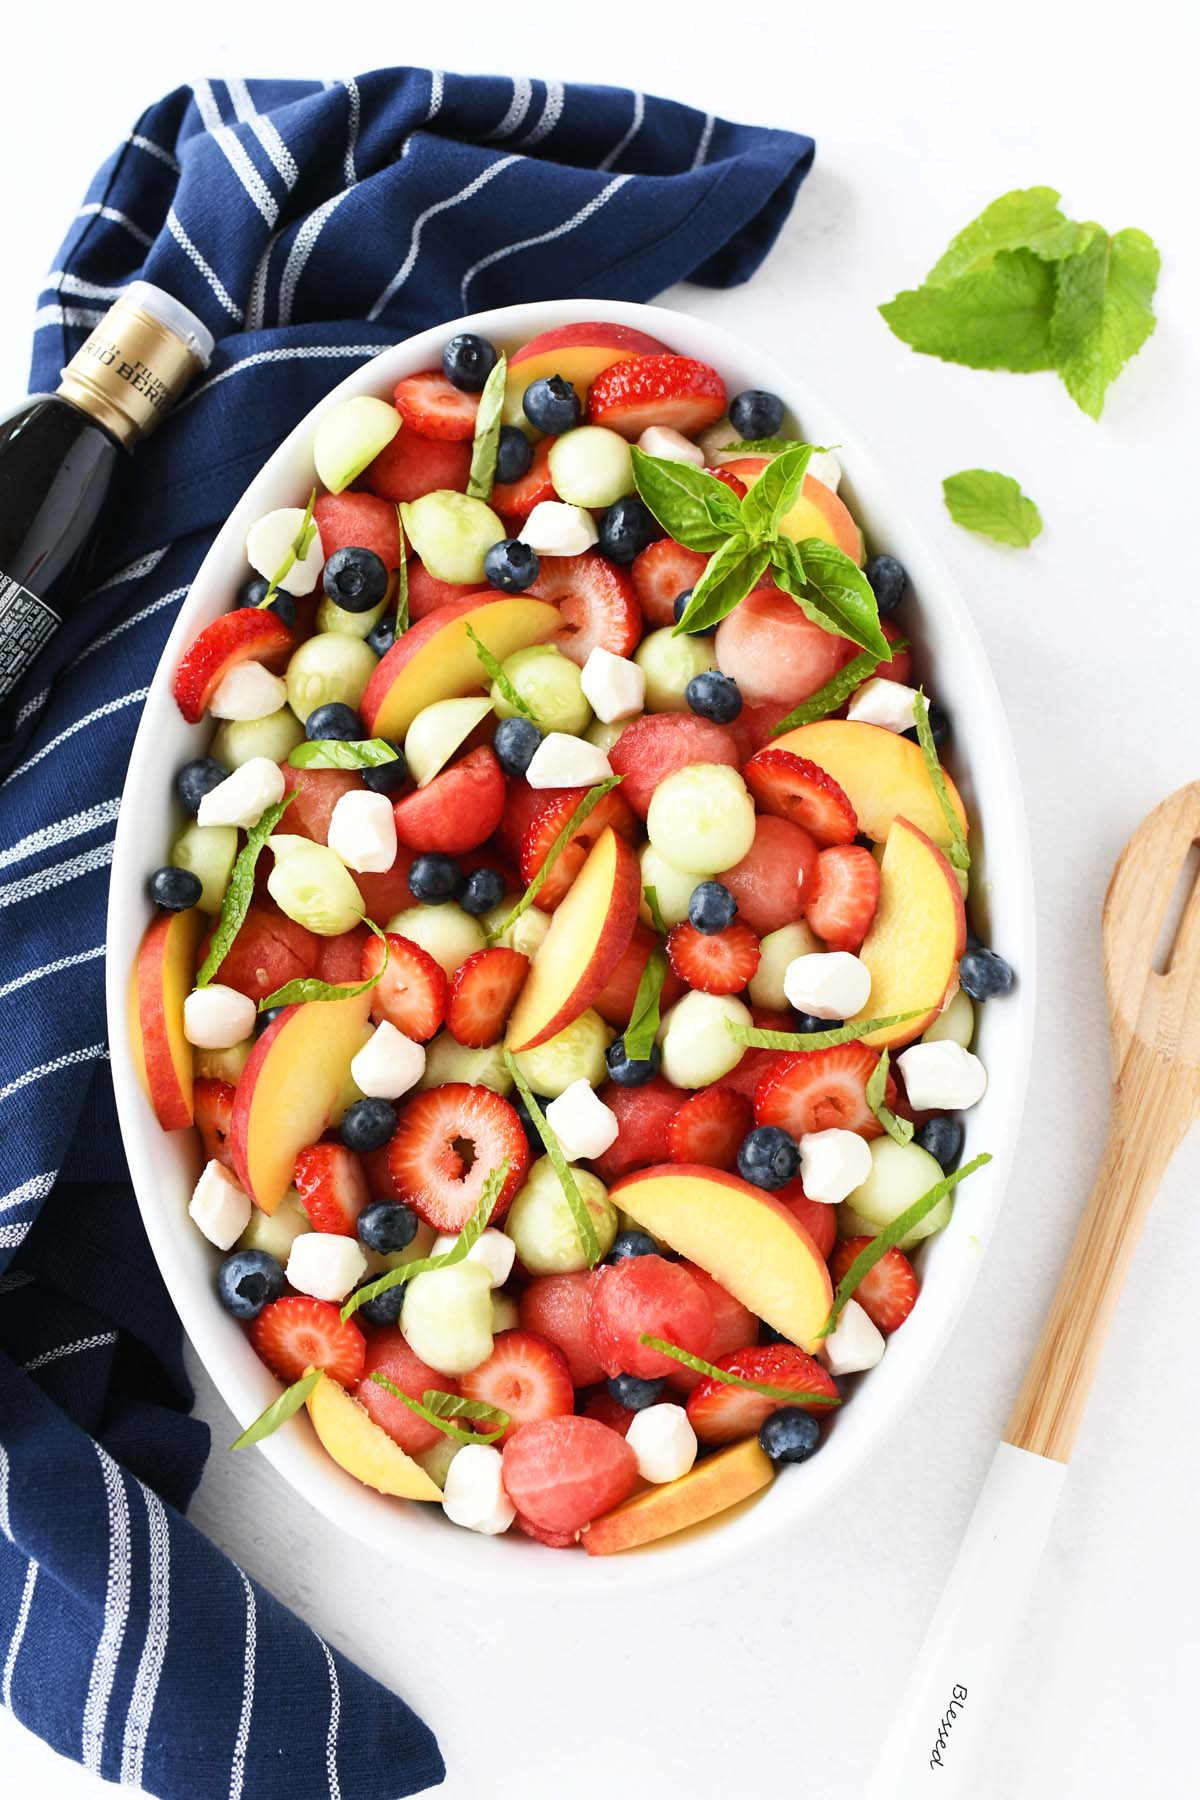 A white oval baker with colorful fruits and green leaves.